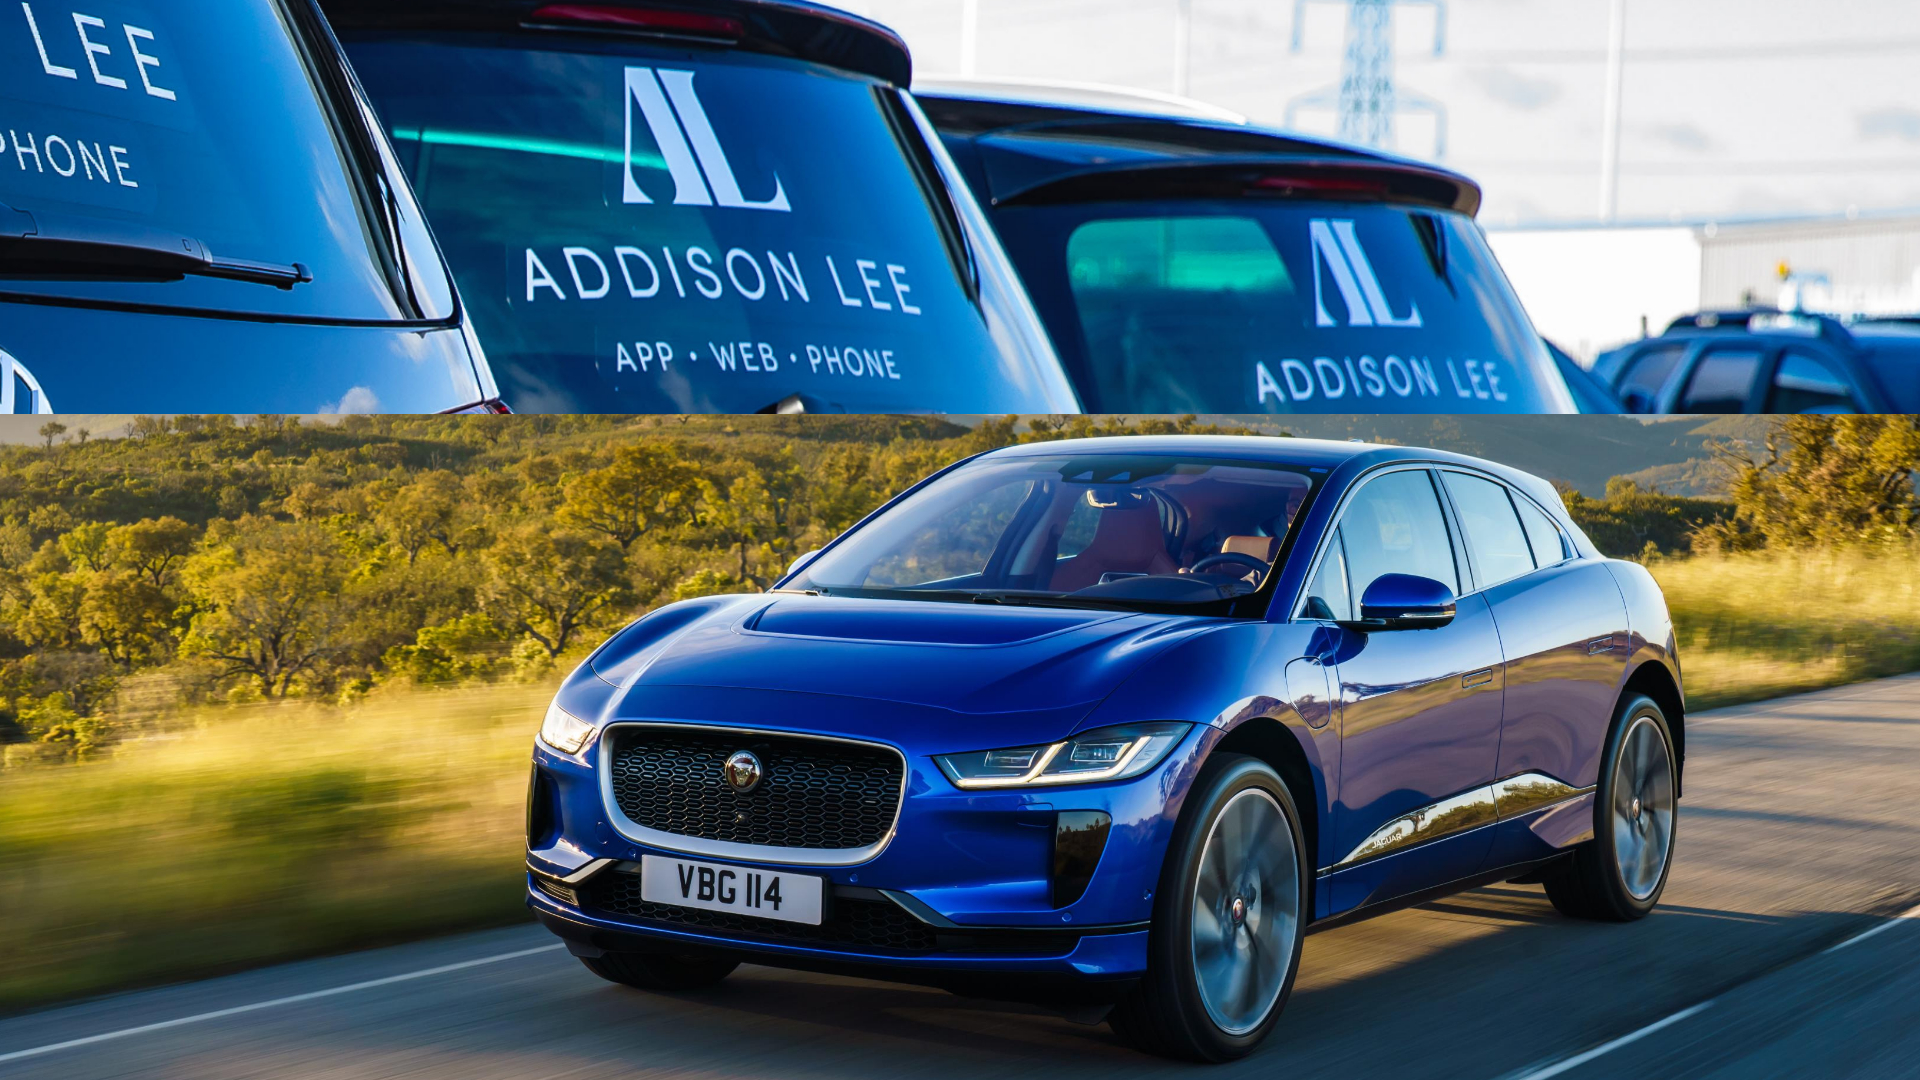 Jaguar Land Rover may buy Addison Lee for £300 million